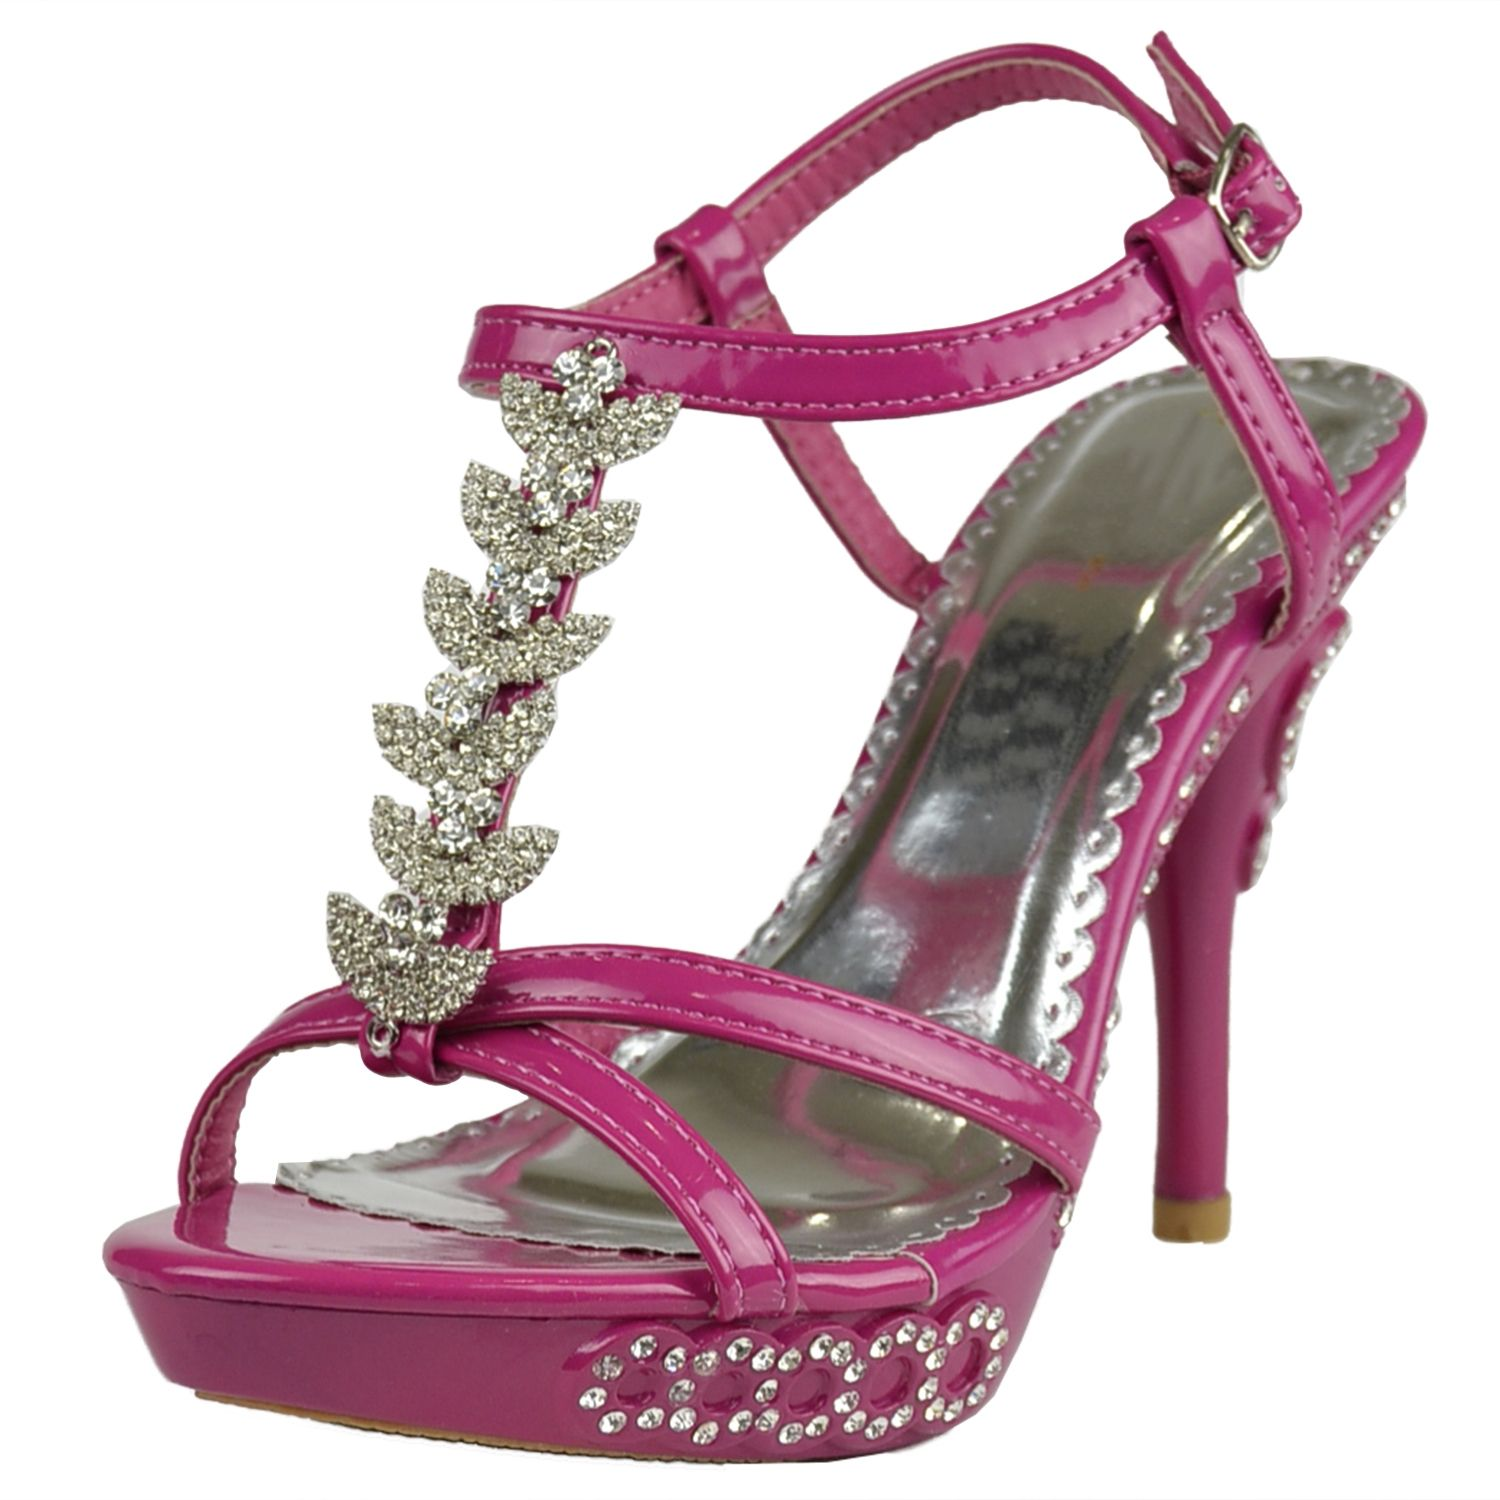 aa25ae9e4282b7 Womens Dress Sandals Angel Wing Rhinestones T Strap High Heel Shoes Fuchsia